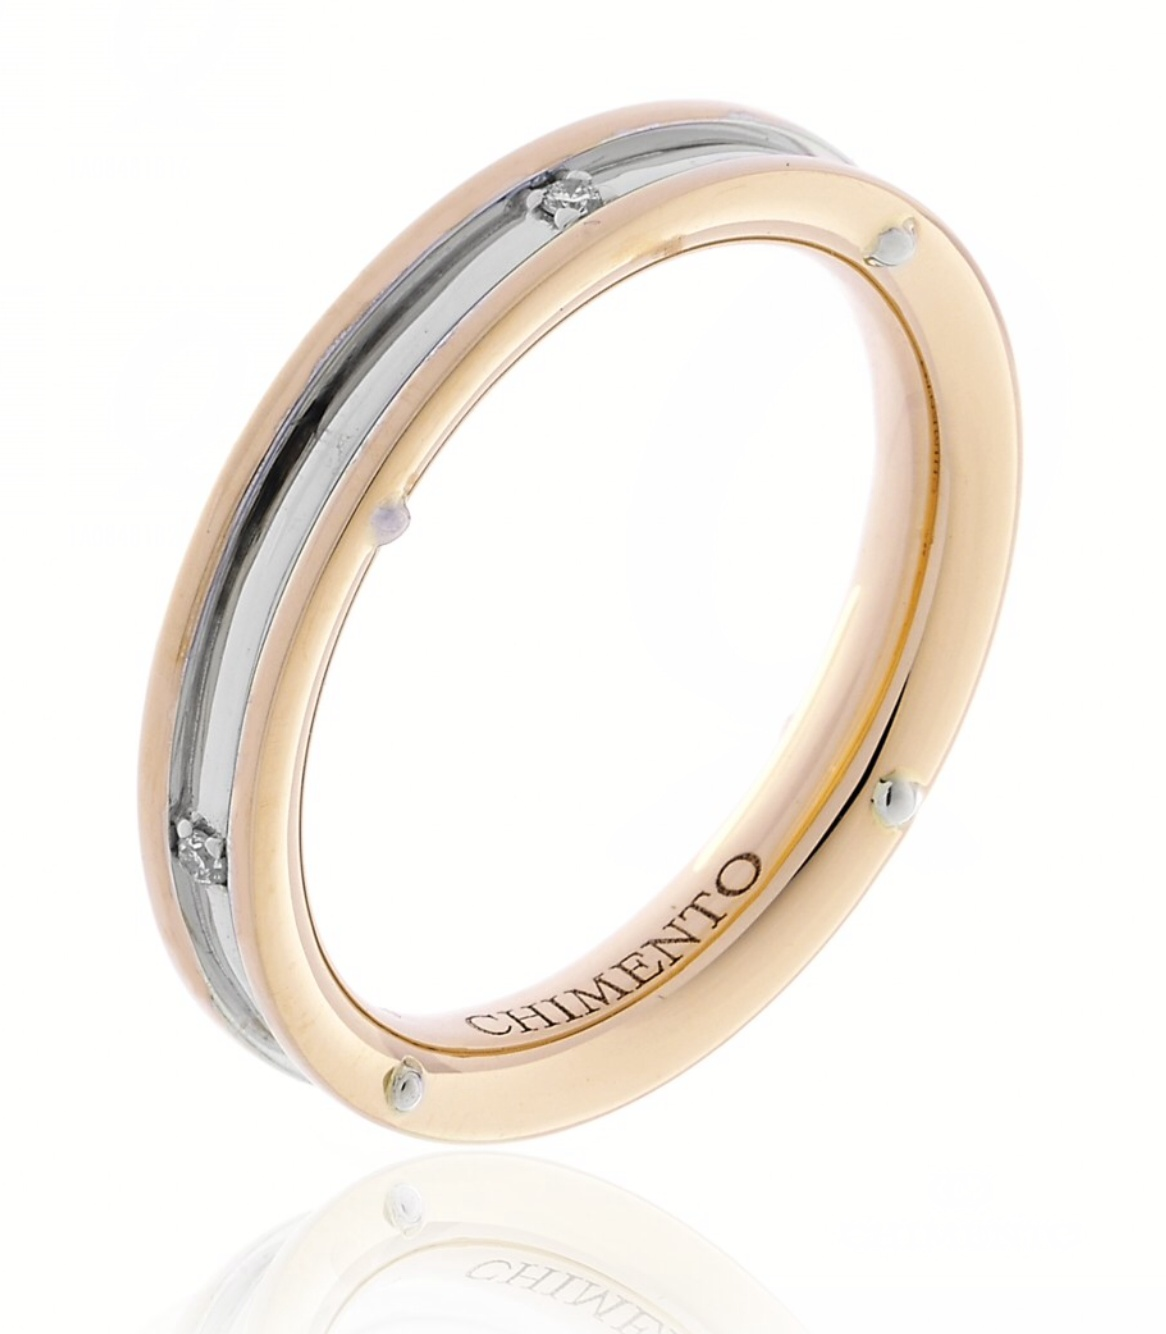 Chimento Damenring 1A08481B16 in 750/00 Rotgold